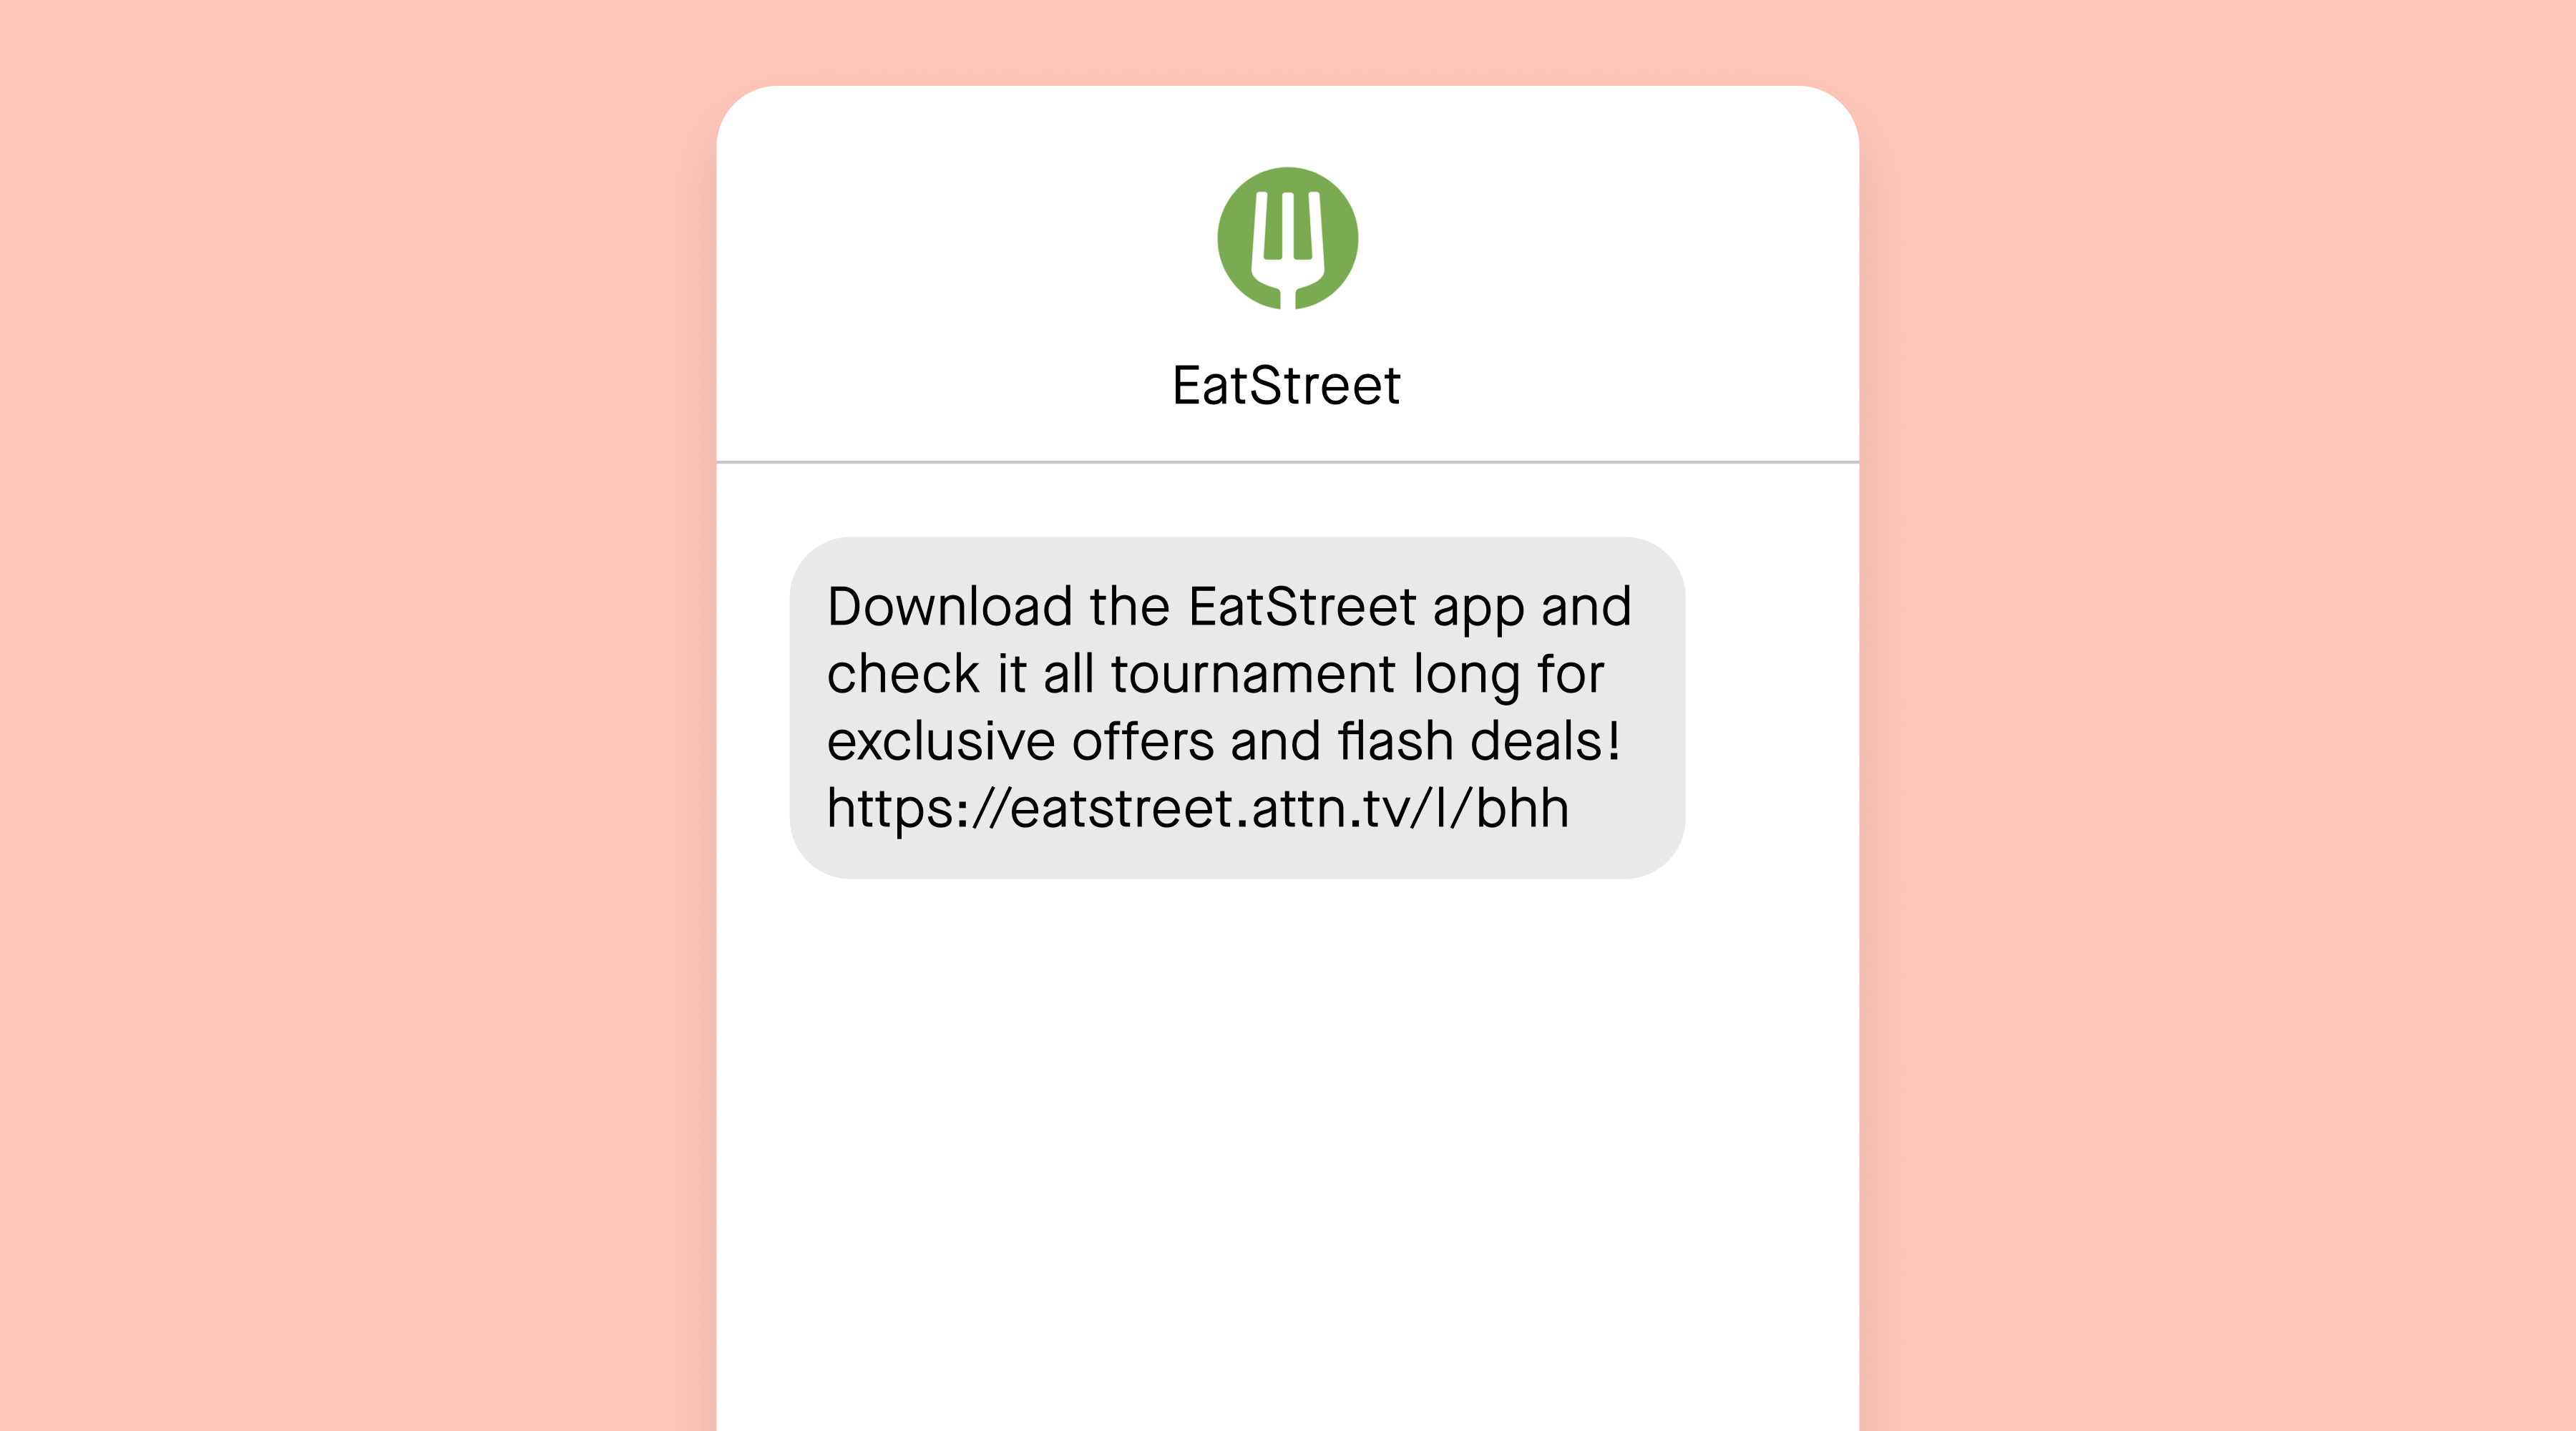 EatStreet app download text